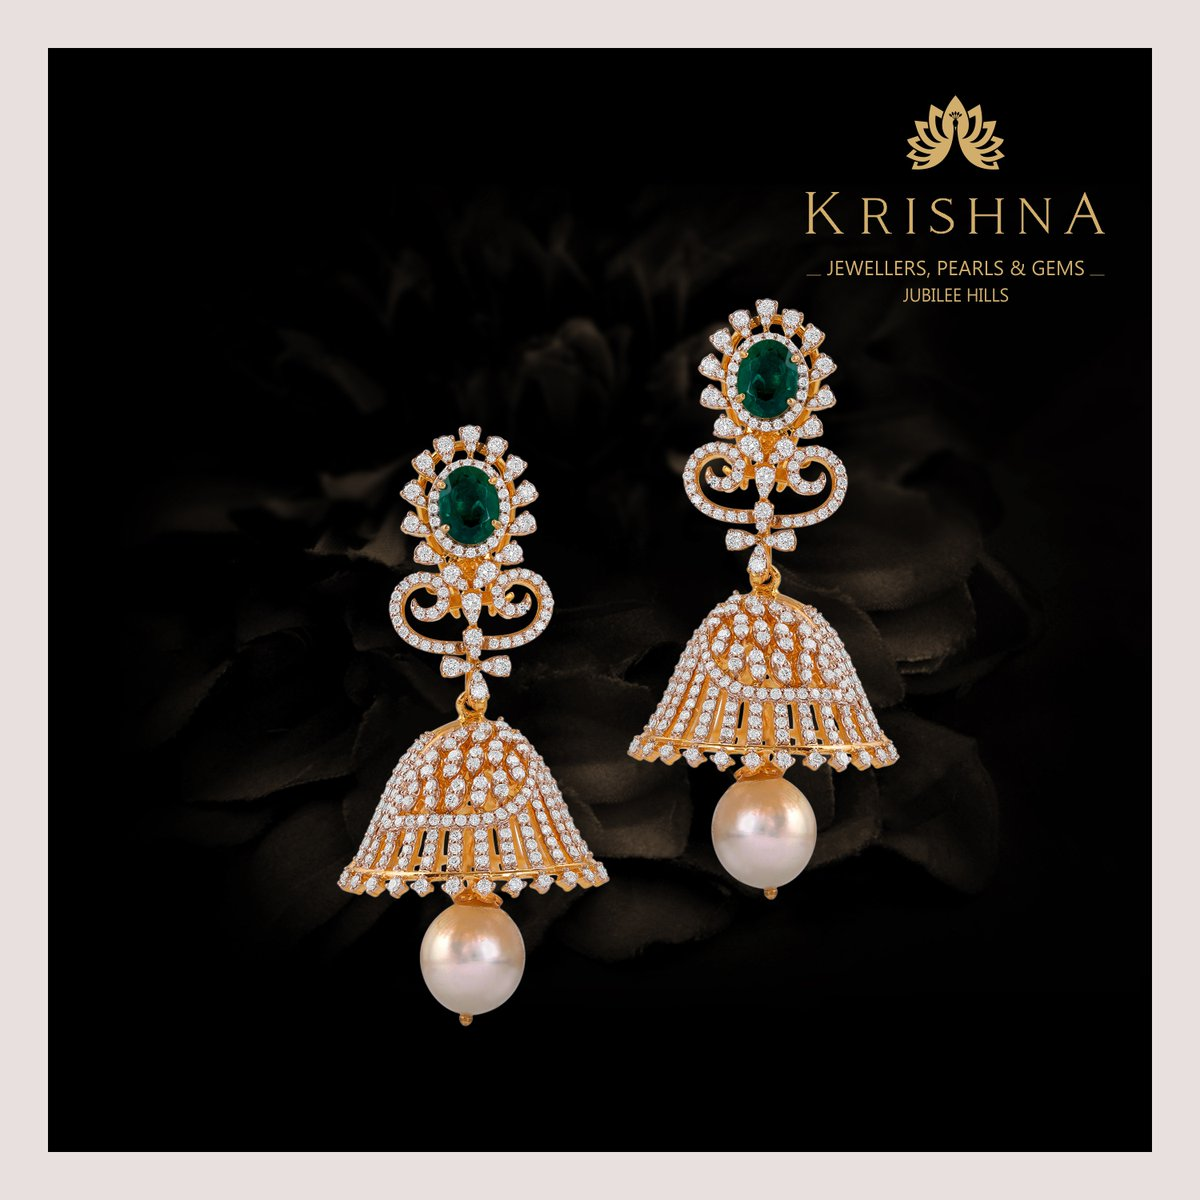 Beautiful Diamond Jhumka Earrings Crafted In Yellow Gold with Emerald & south sea pearl assorted diamonds are perfect to elevate the glossy feminine shine in you.  For more details Contact Us @ +91-7093324141. #diamondearrings #earrings #goldearrings #jhumkaearrings #jhumkaspic.twitter.com/ZO7MuXr1Ib